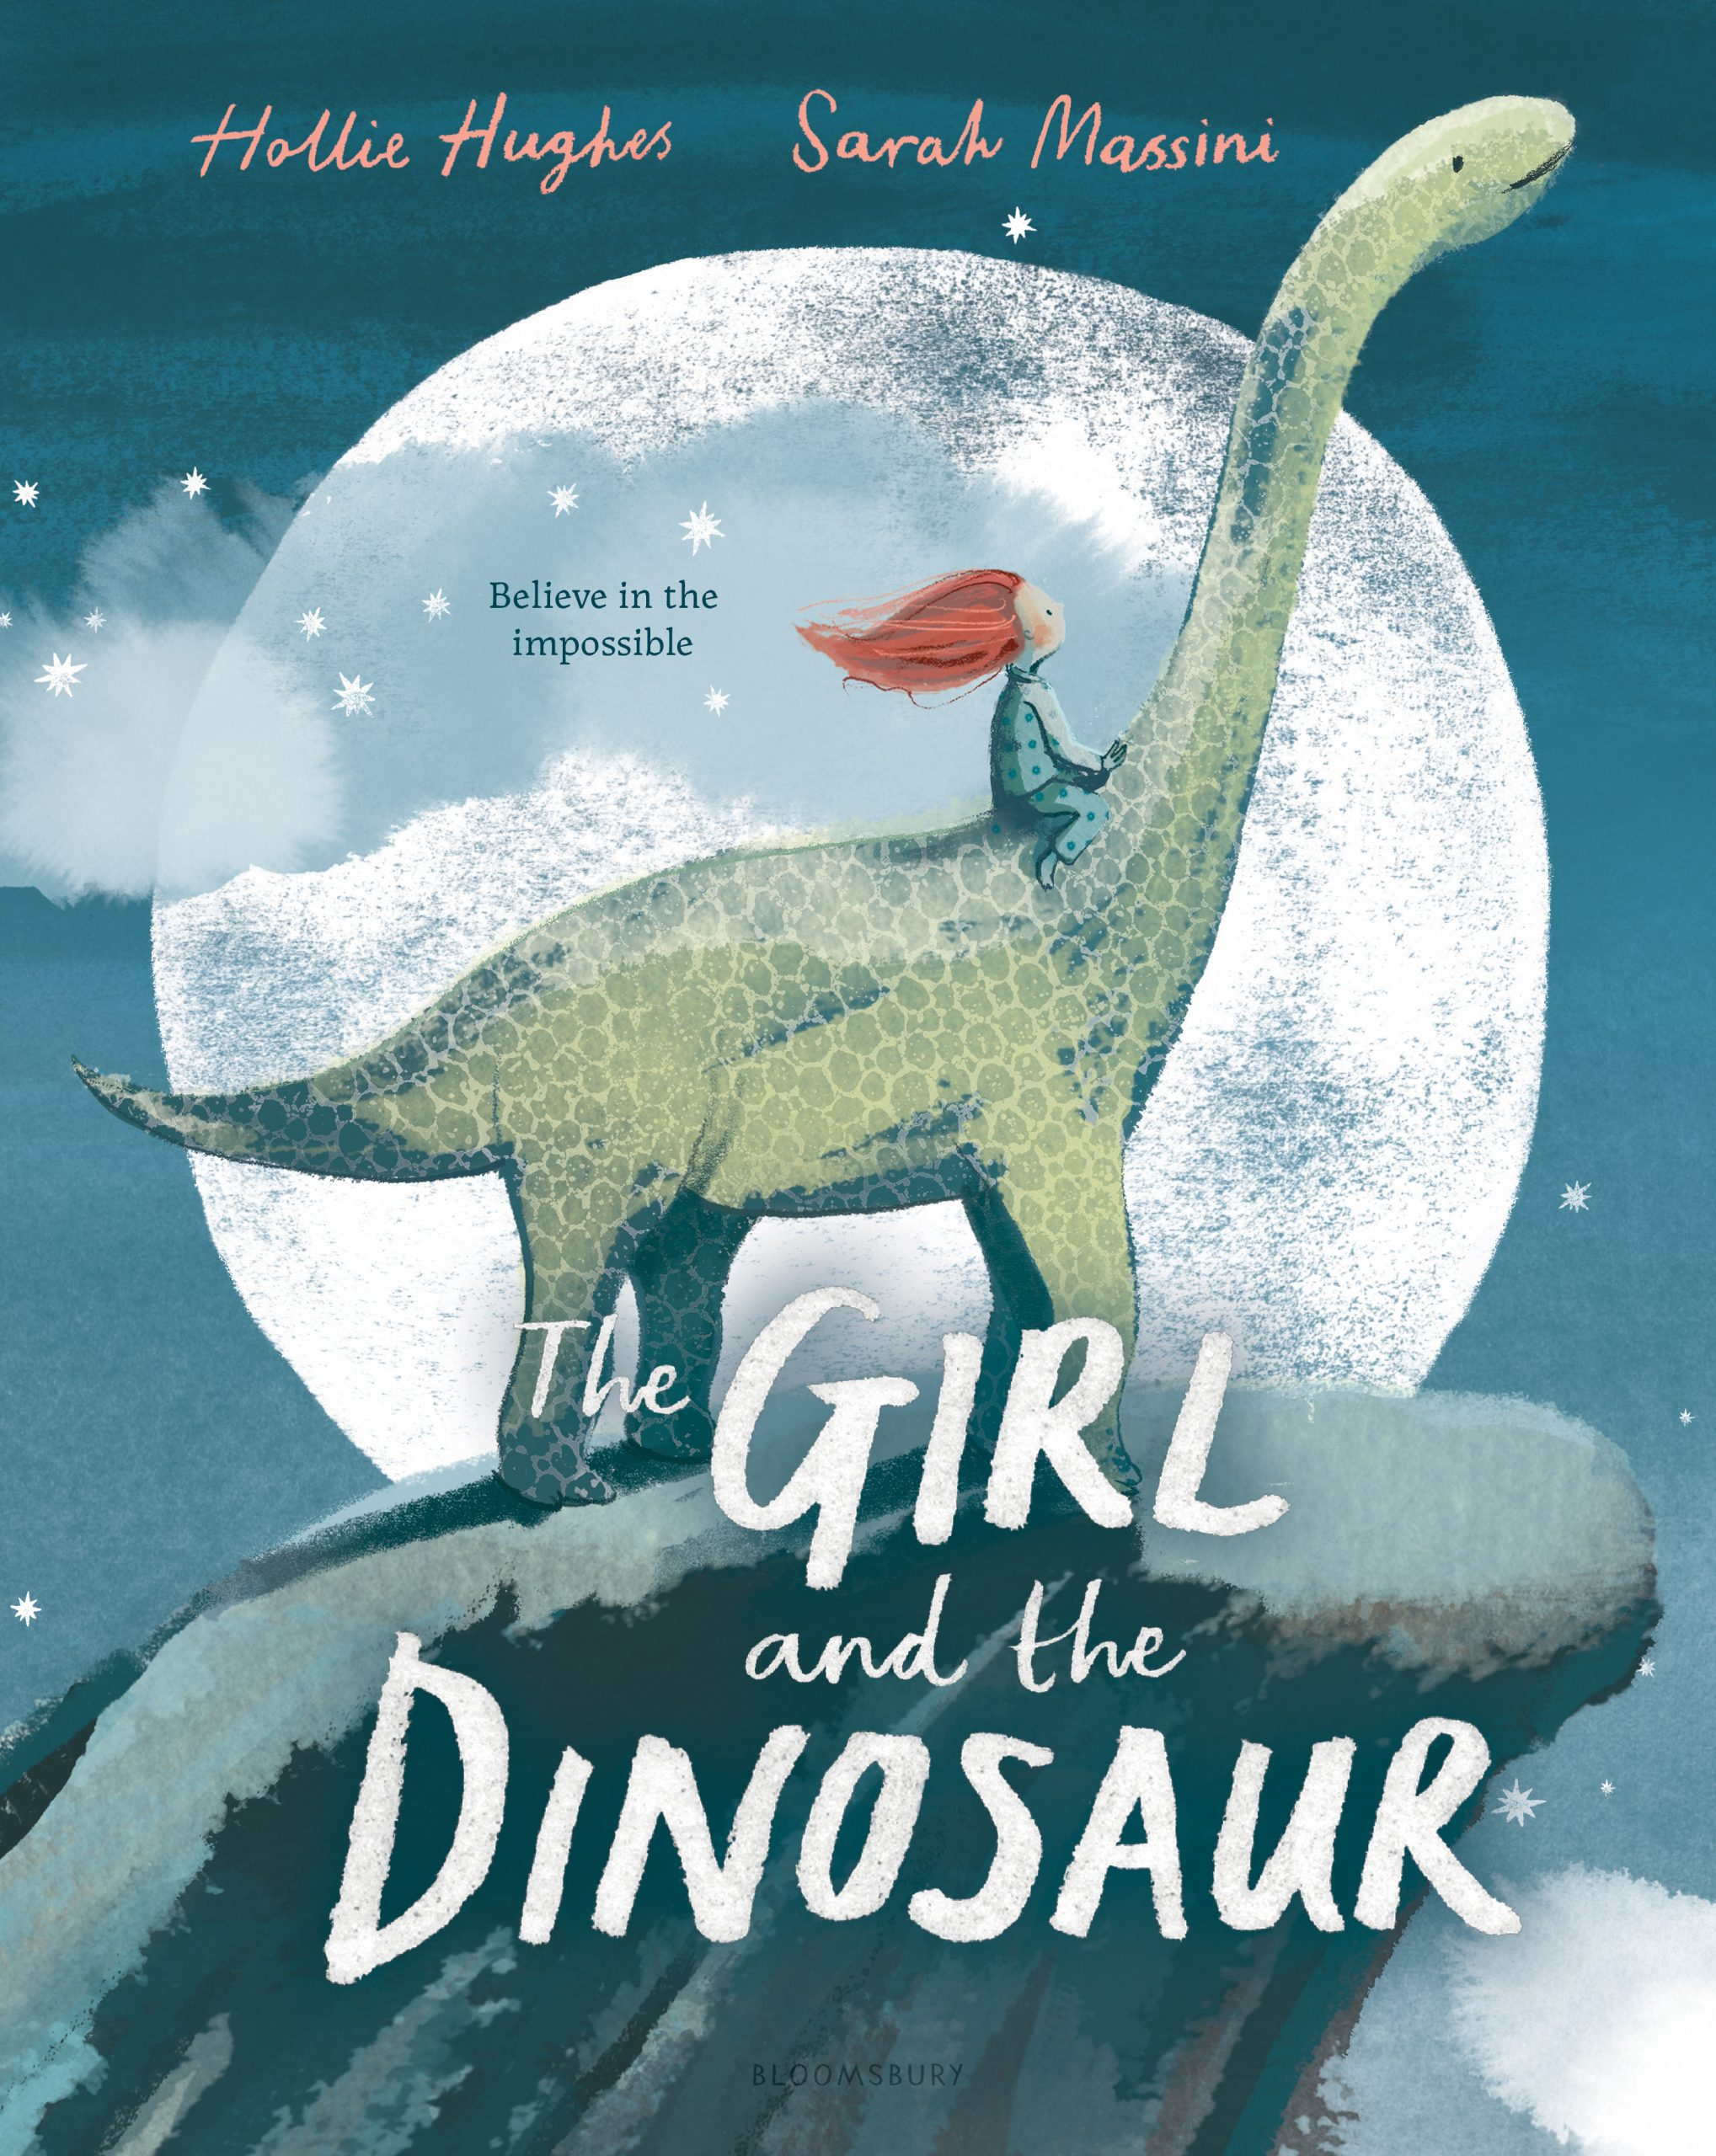 The Girl and the Dinosaur by Hollie Hughes, illustrated by Sarah Massini